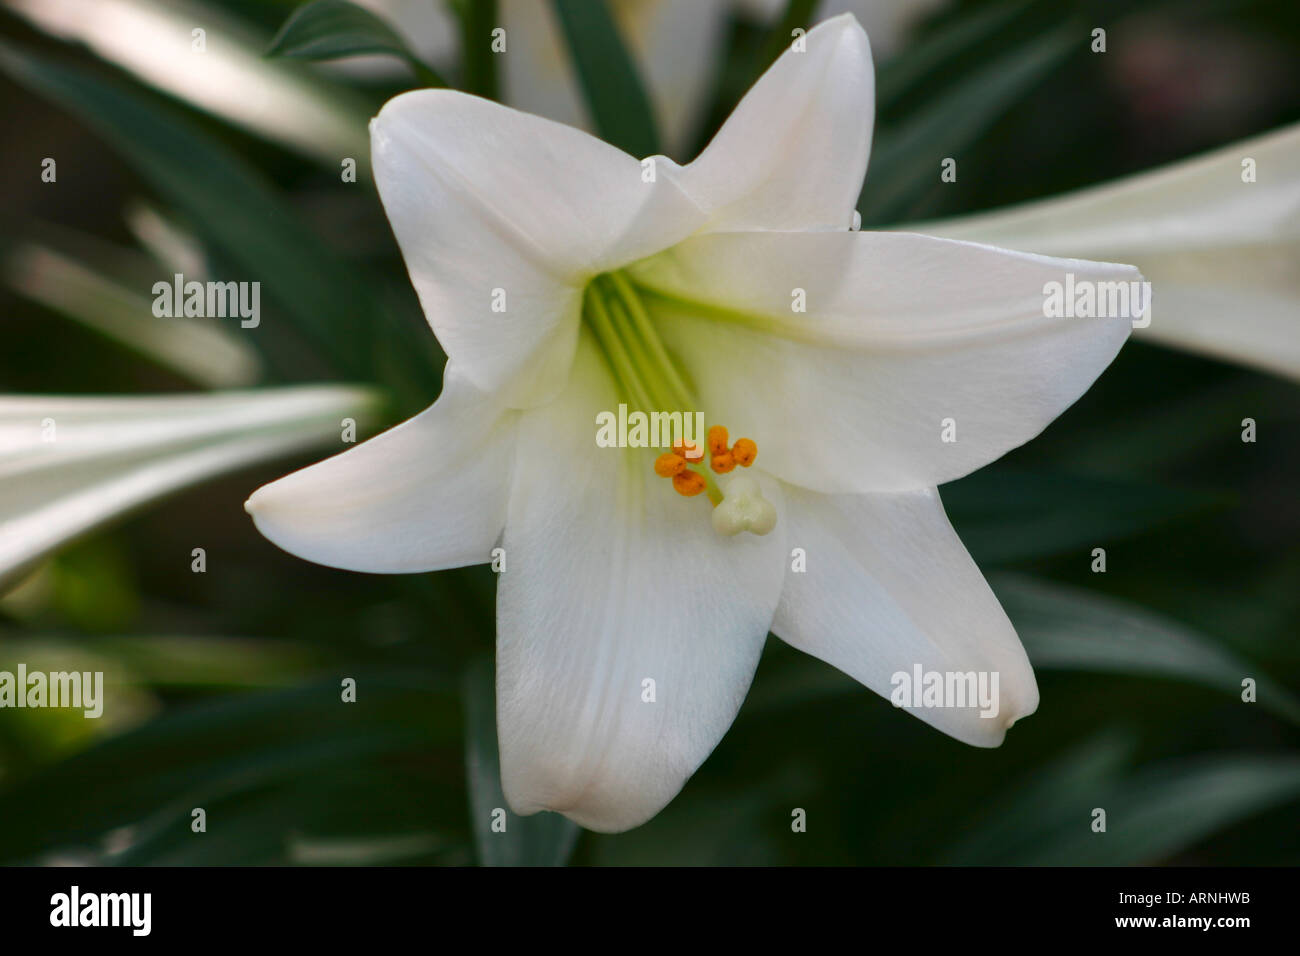 Japanese easter lily flower stock photo 9198170 alamy japanese easter lily flower izmirmasajfo